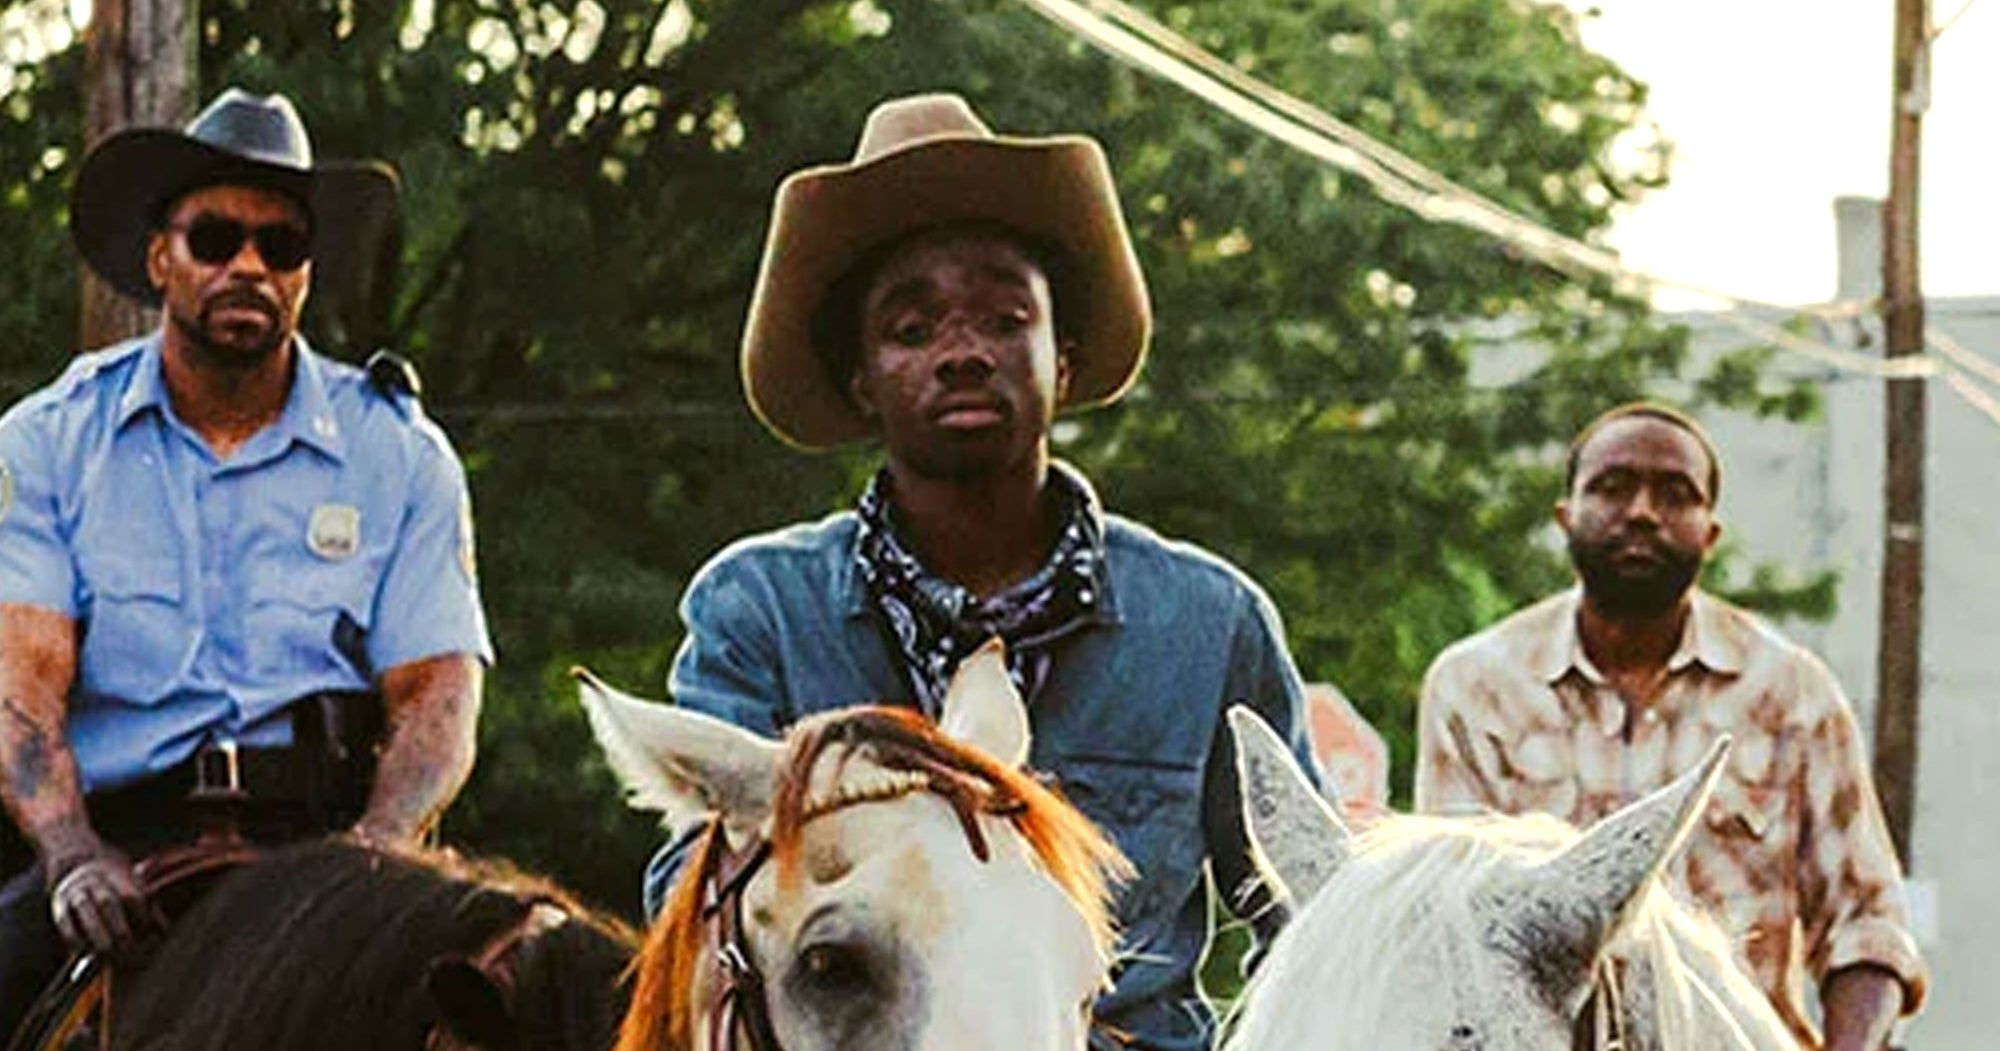 Stranger Things' Caleb McLaughlin Is All Grown Up In This Gritty New Western